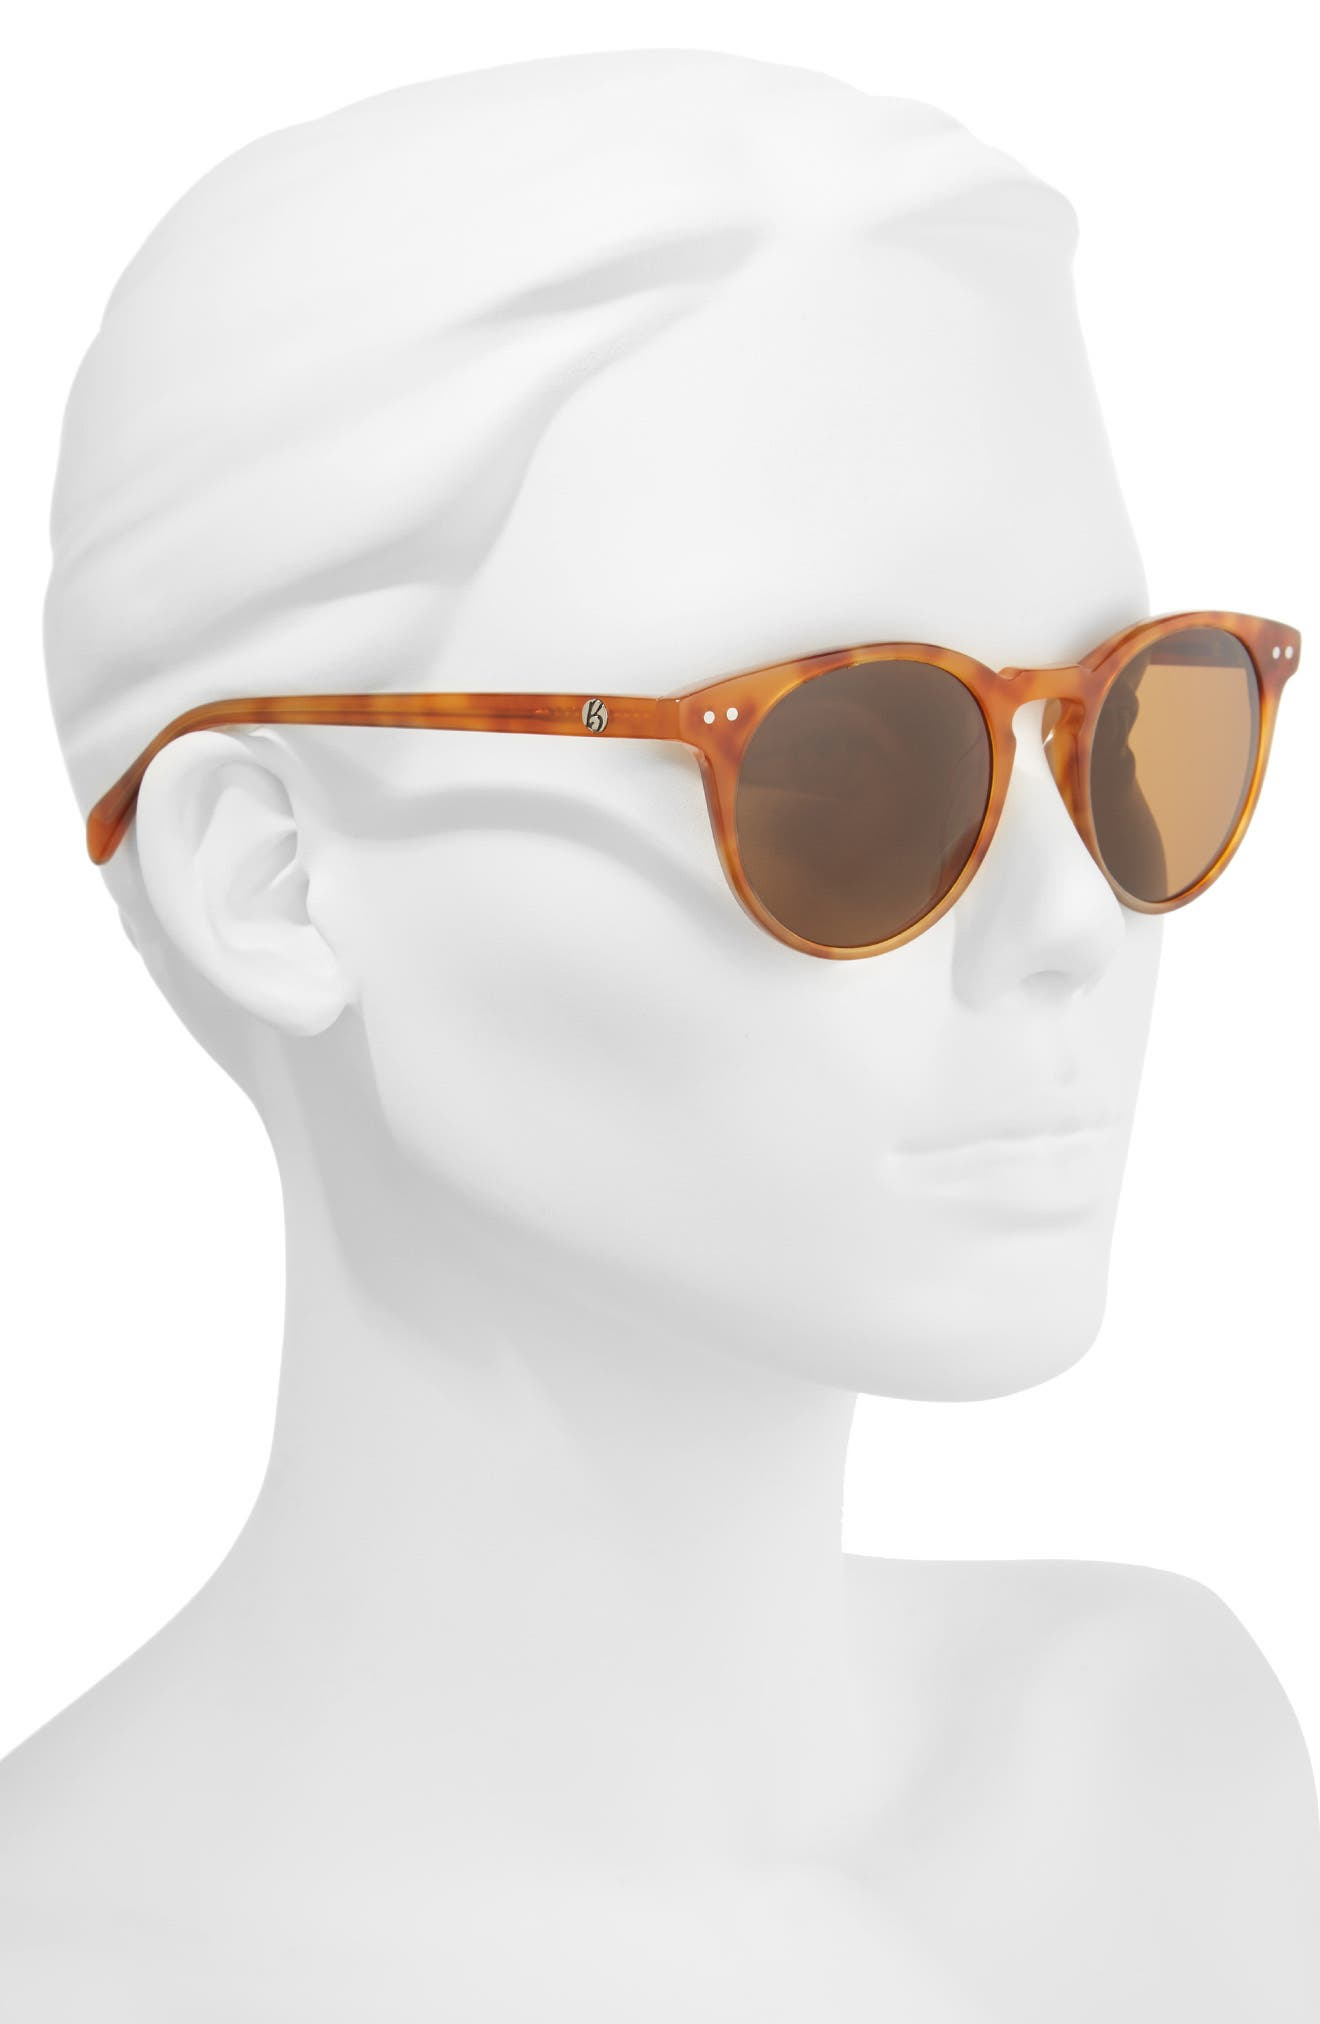 Oxford 49mm Sunglasses,                             Alternate thumbnail 2, color,                             Light Brown/ Brown